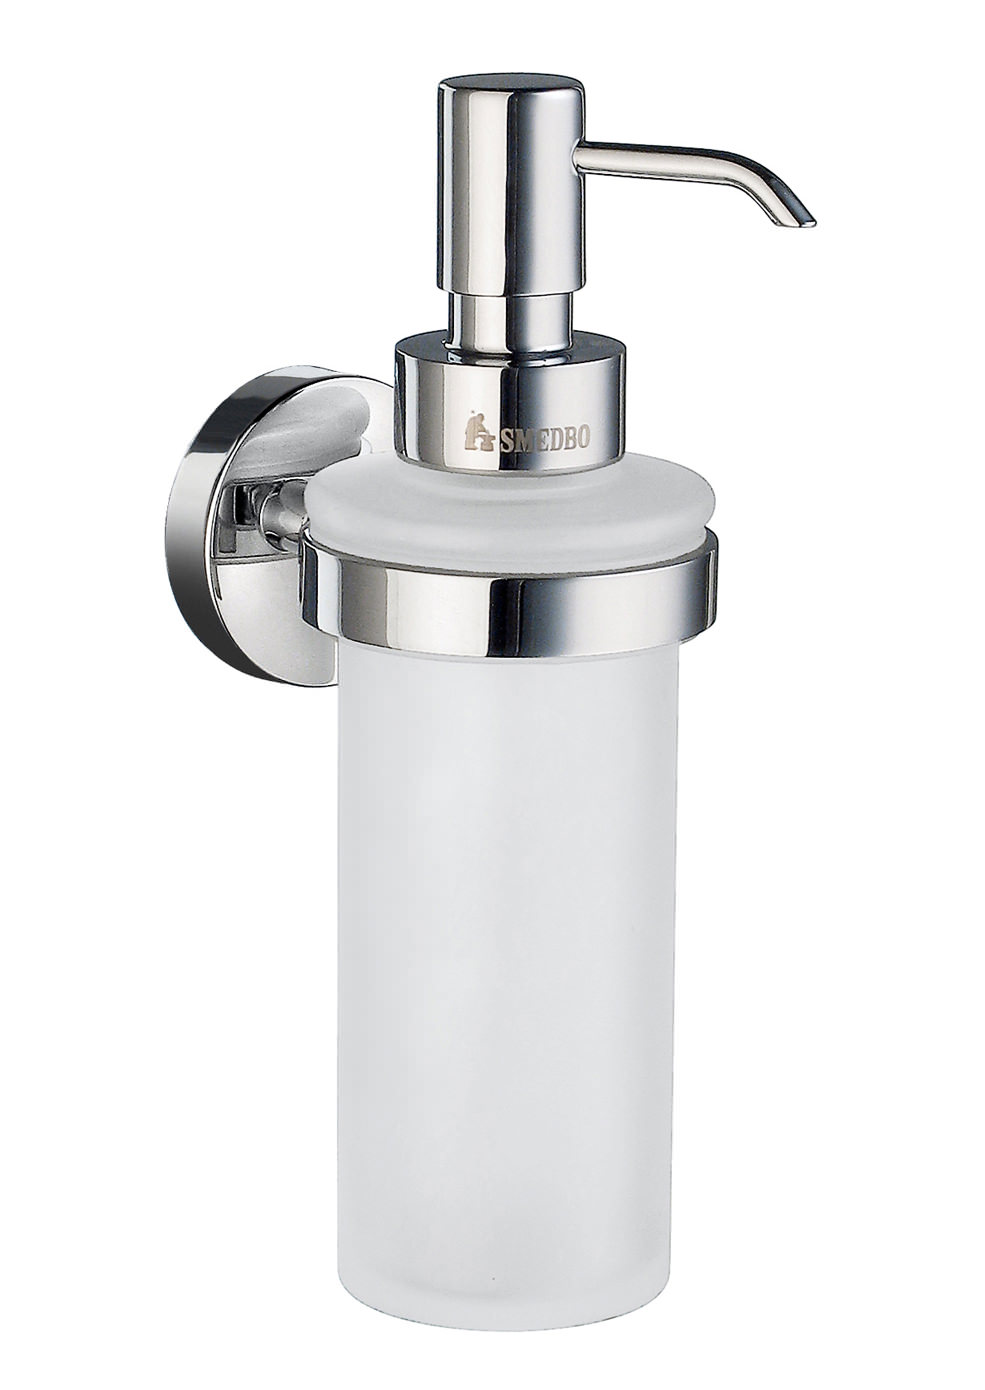 Smedbo Home Frosted Glass Soap Dispenser With Holder Hk369